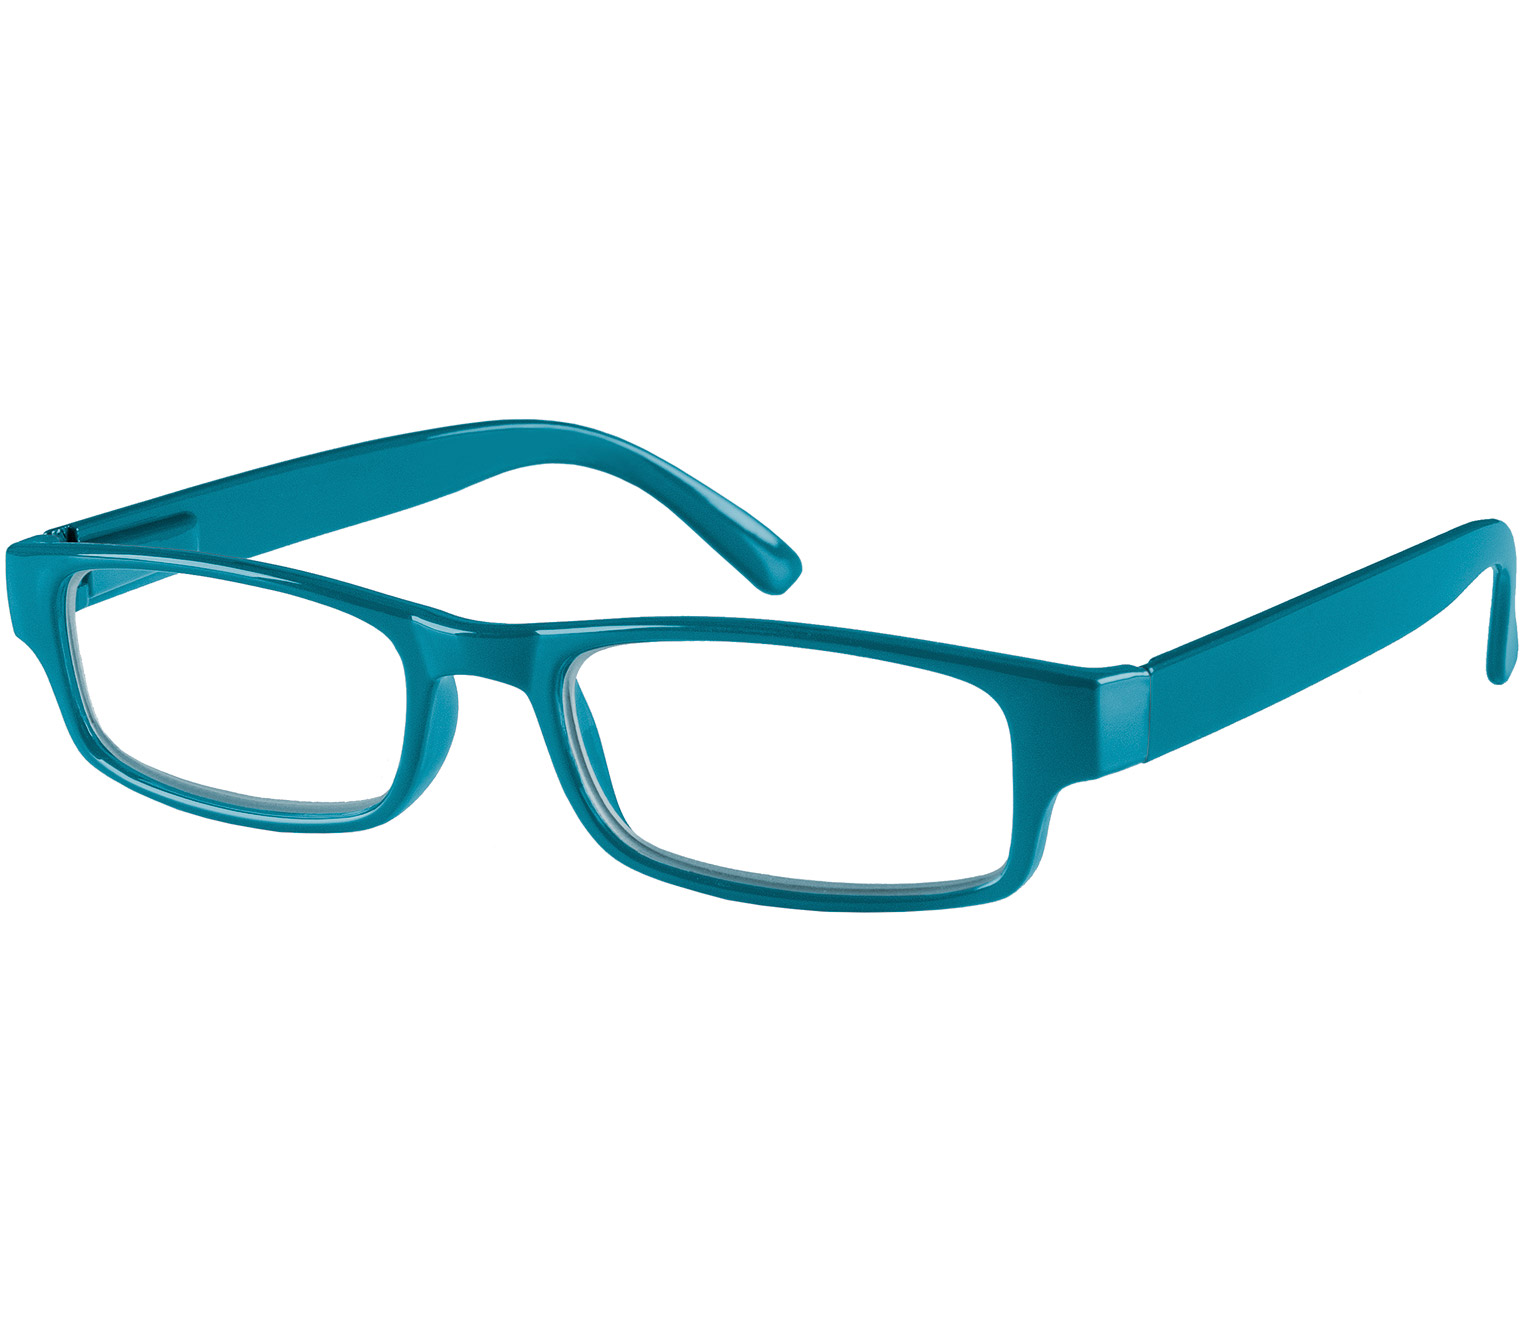 Main Image (Angle) - Dash (Blue) Classic Reading Glasses